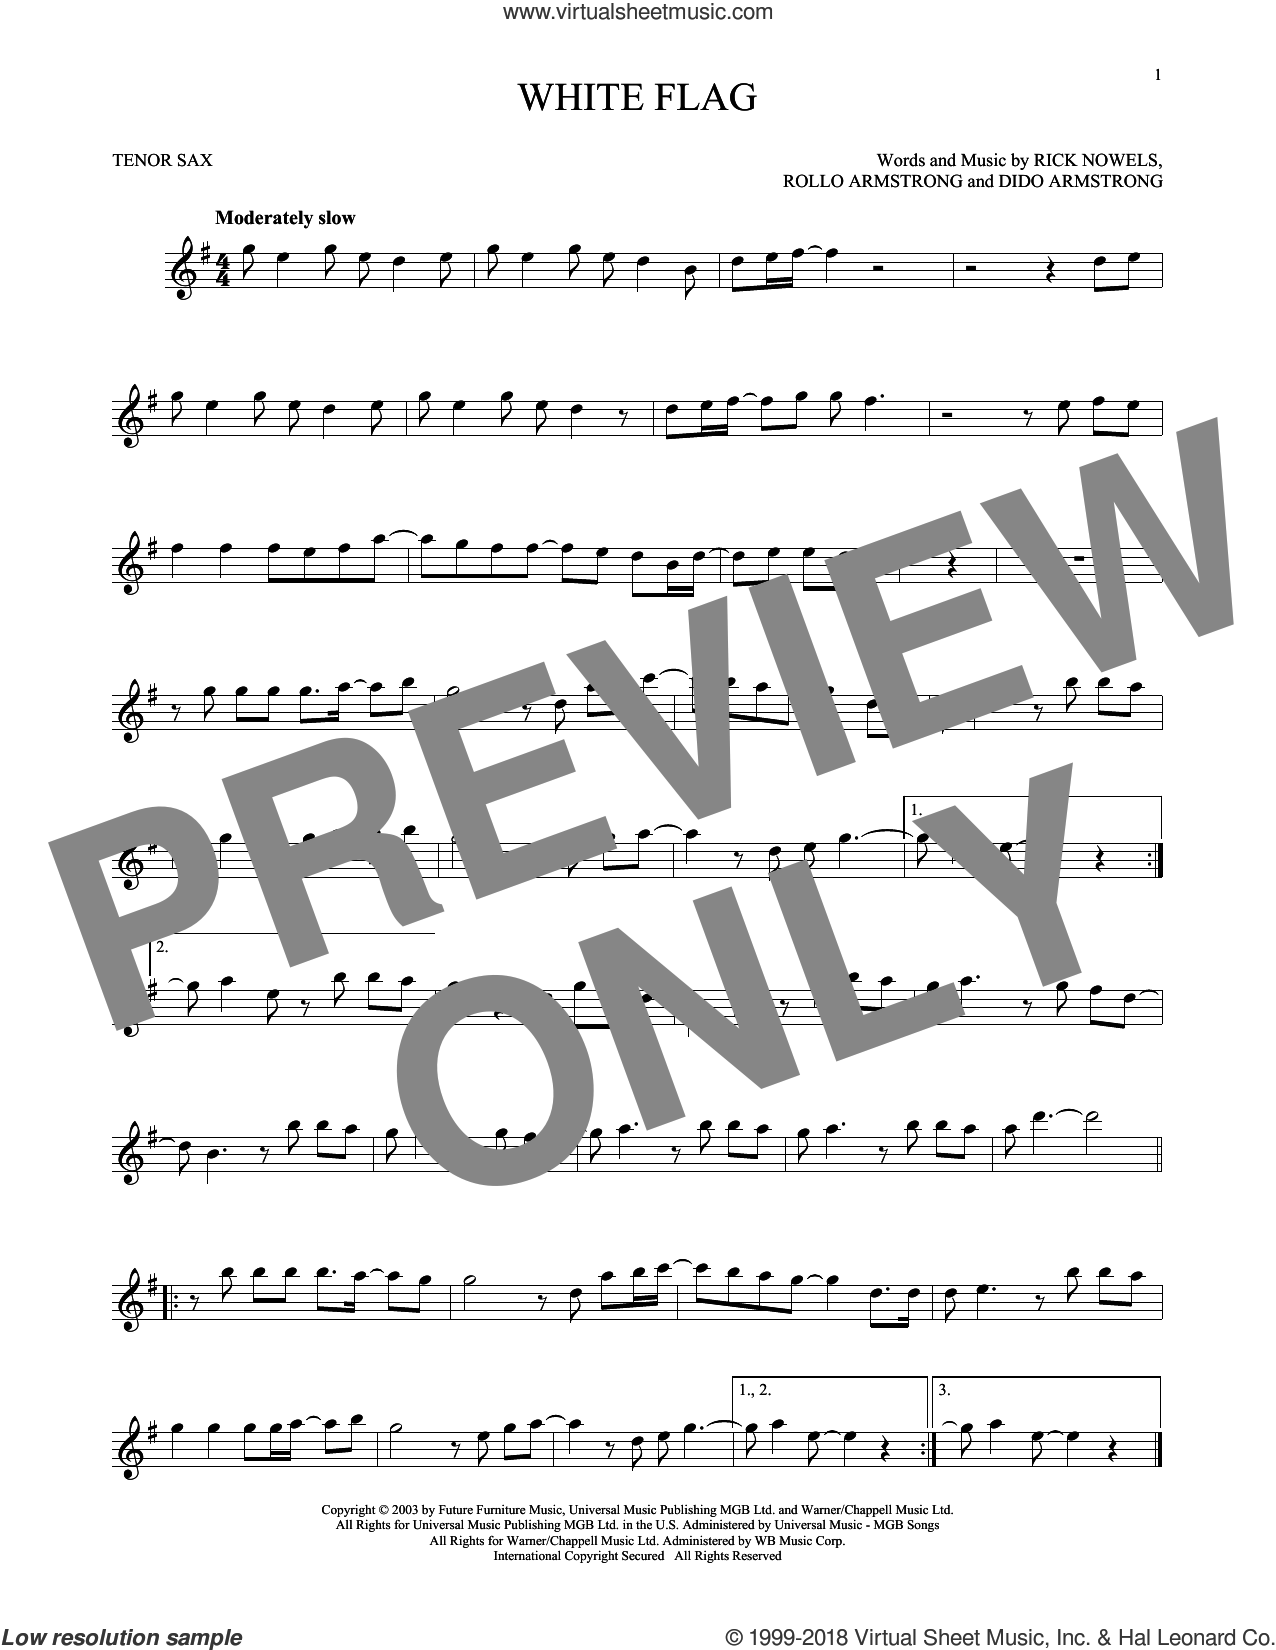 White Flag sheet music for tenor saxophone solo by Dido Armstrong, Rick Nowels and Rollo Armstrong, intermediate skill level